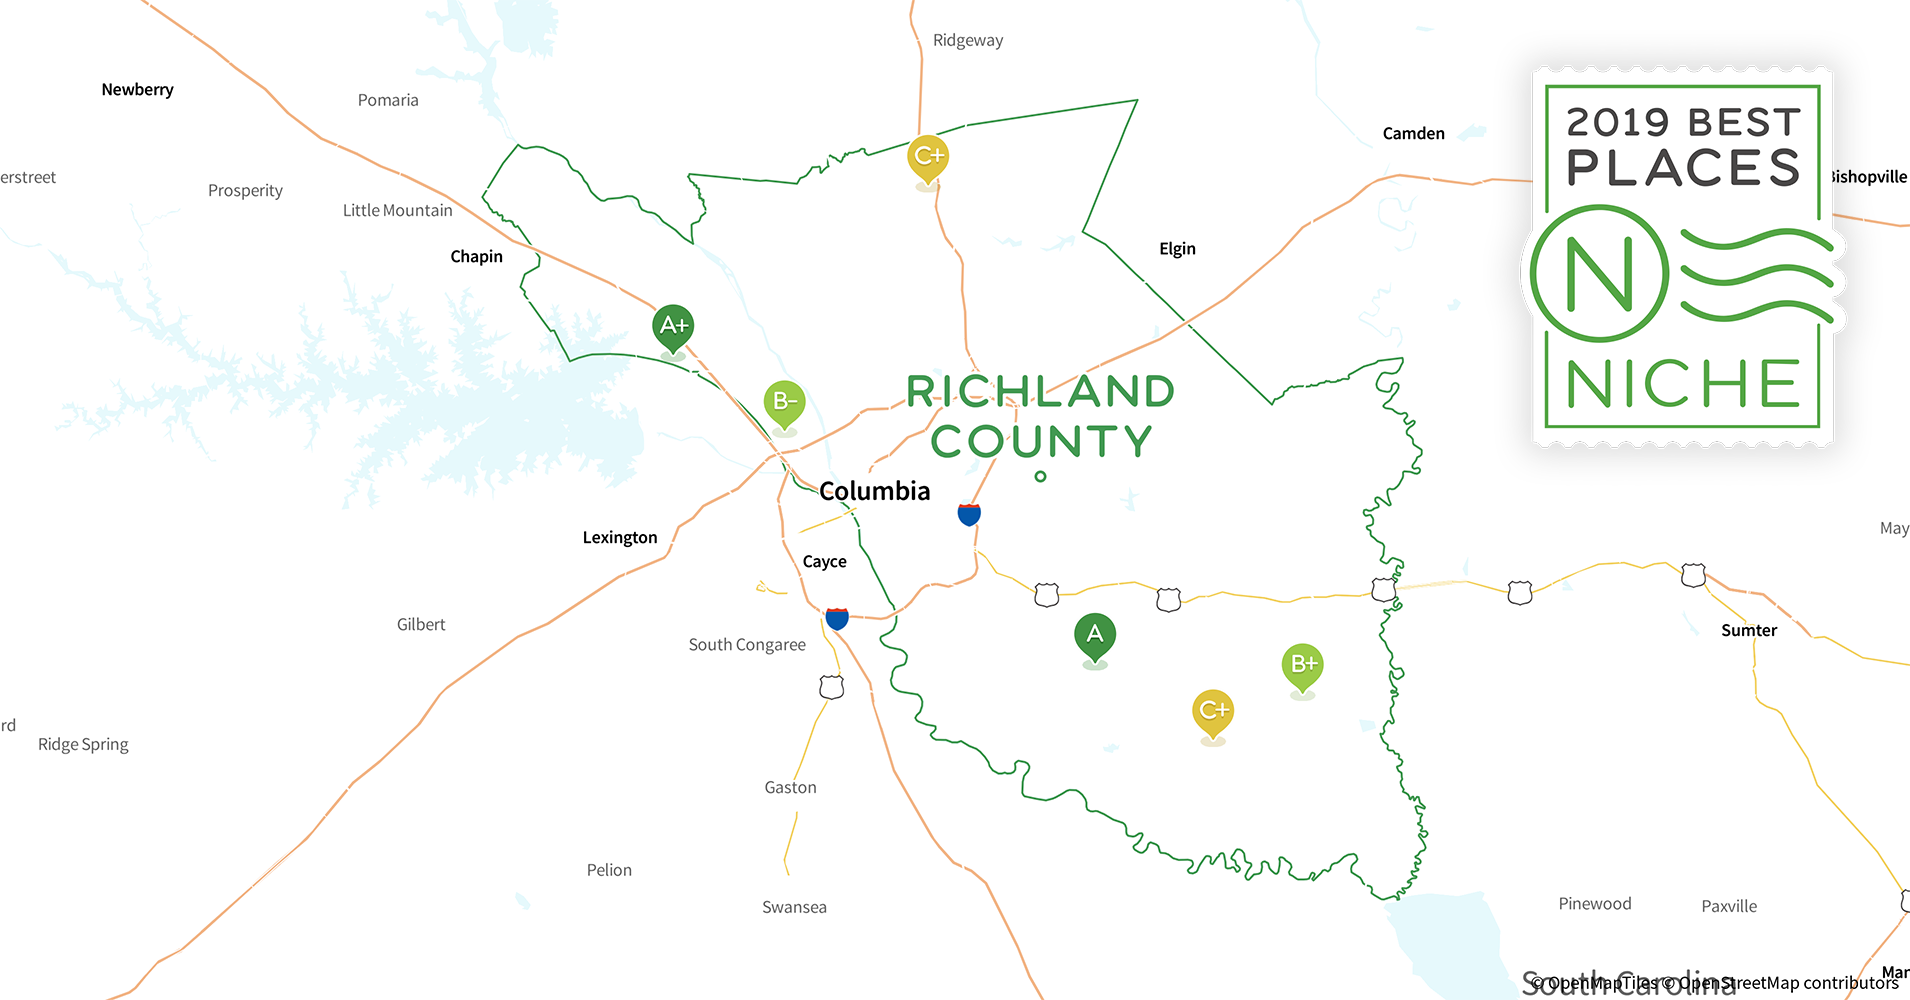 2019 Best Places to Live in Richland County, SC - Niche